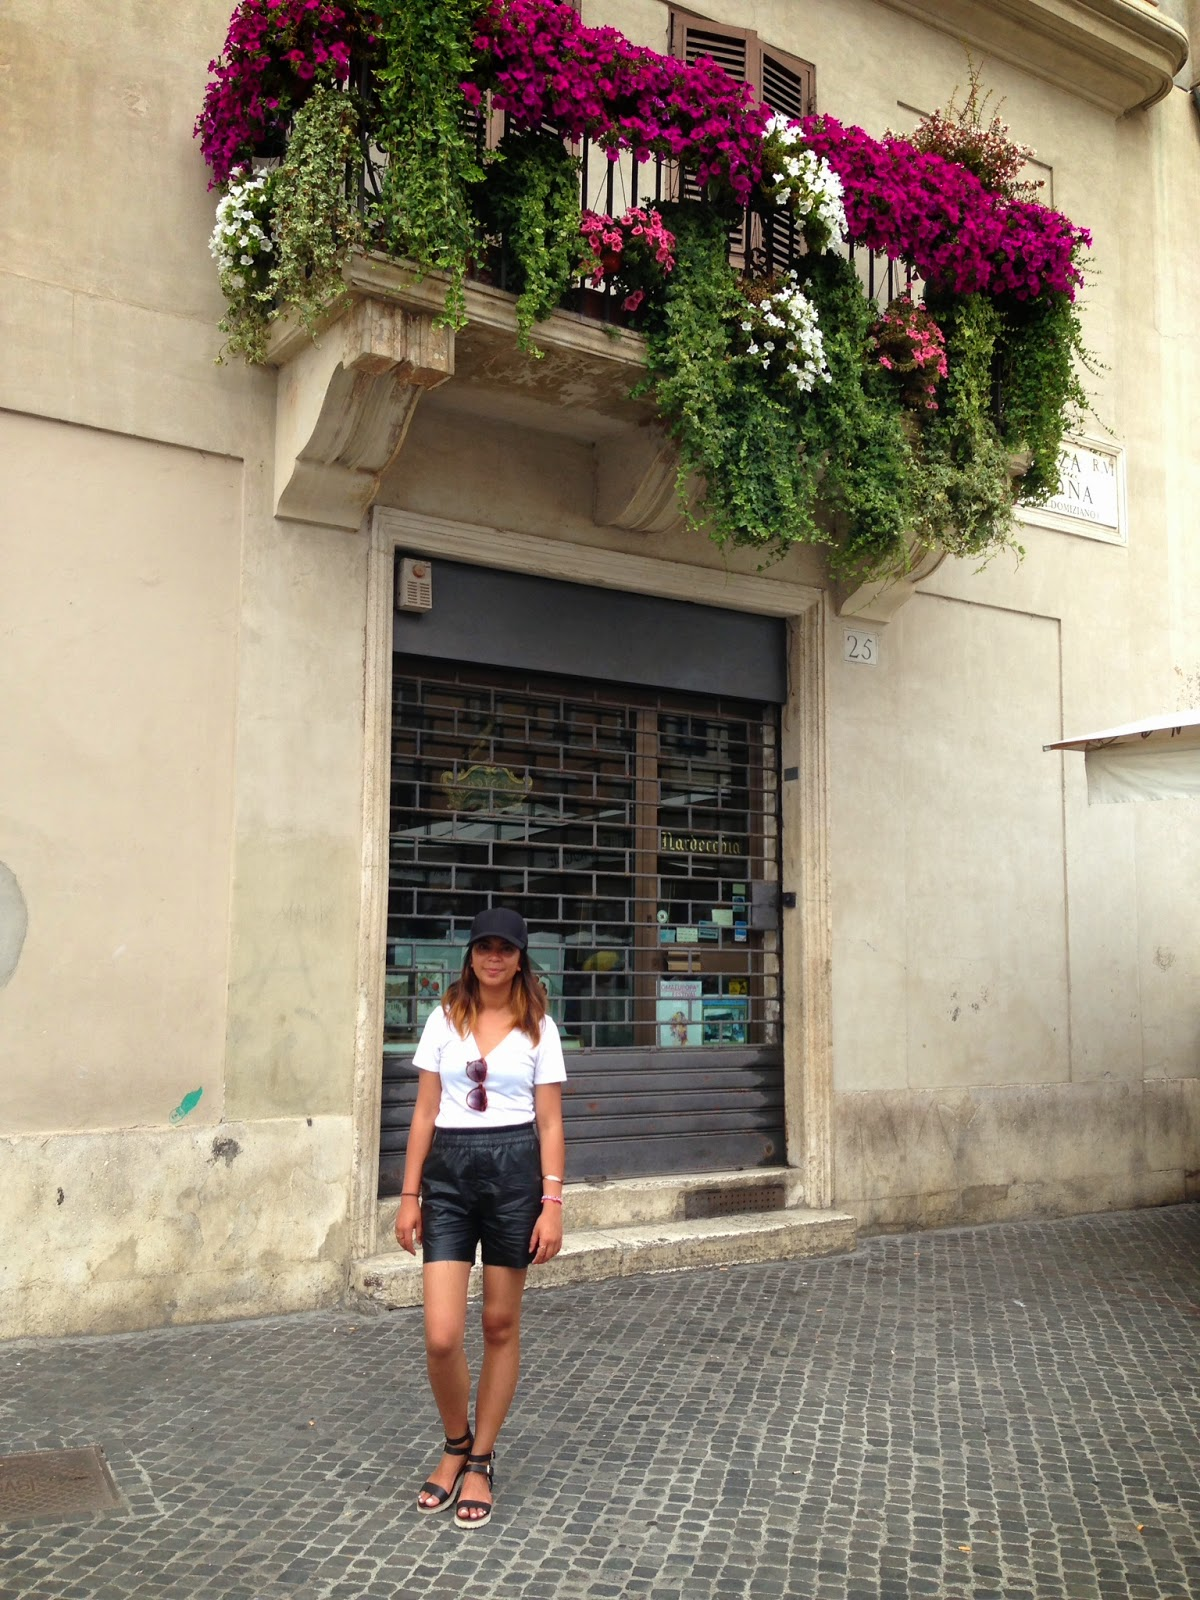 portland blogger, fashionista, italy, fashion blogger, ootd, what i wore, street style, the p town girls